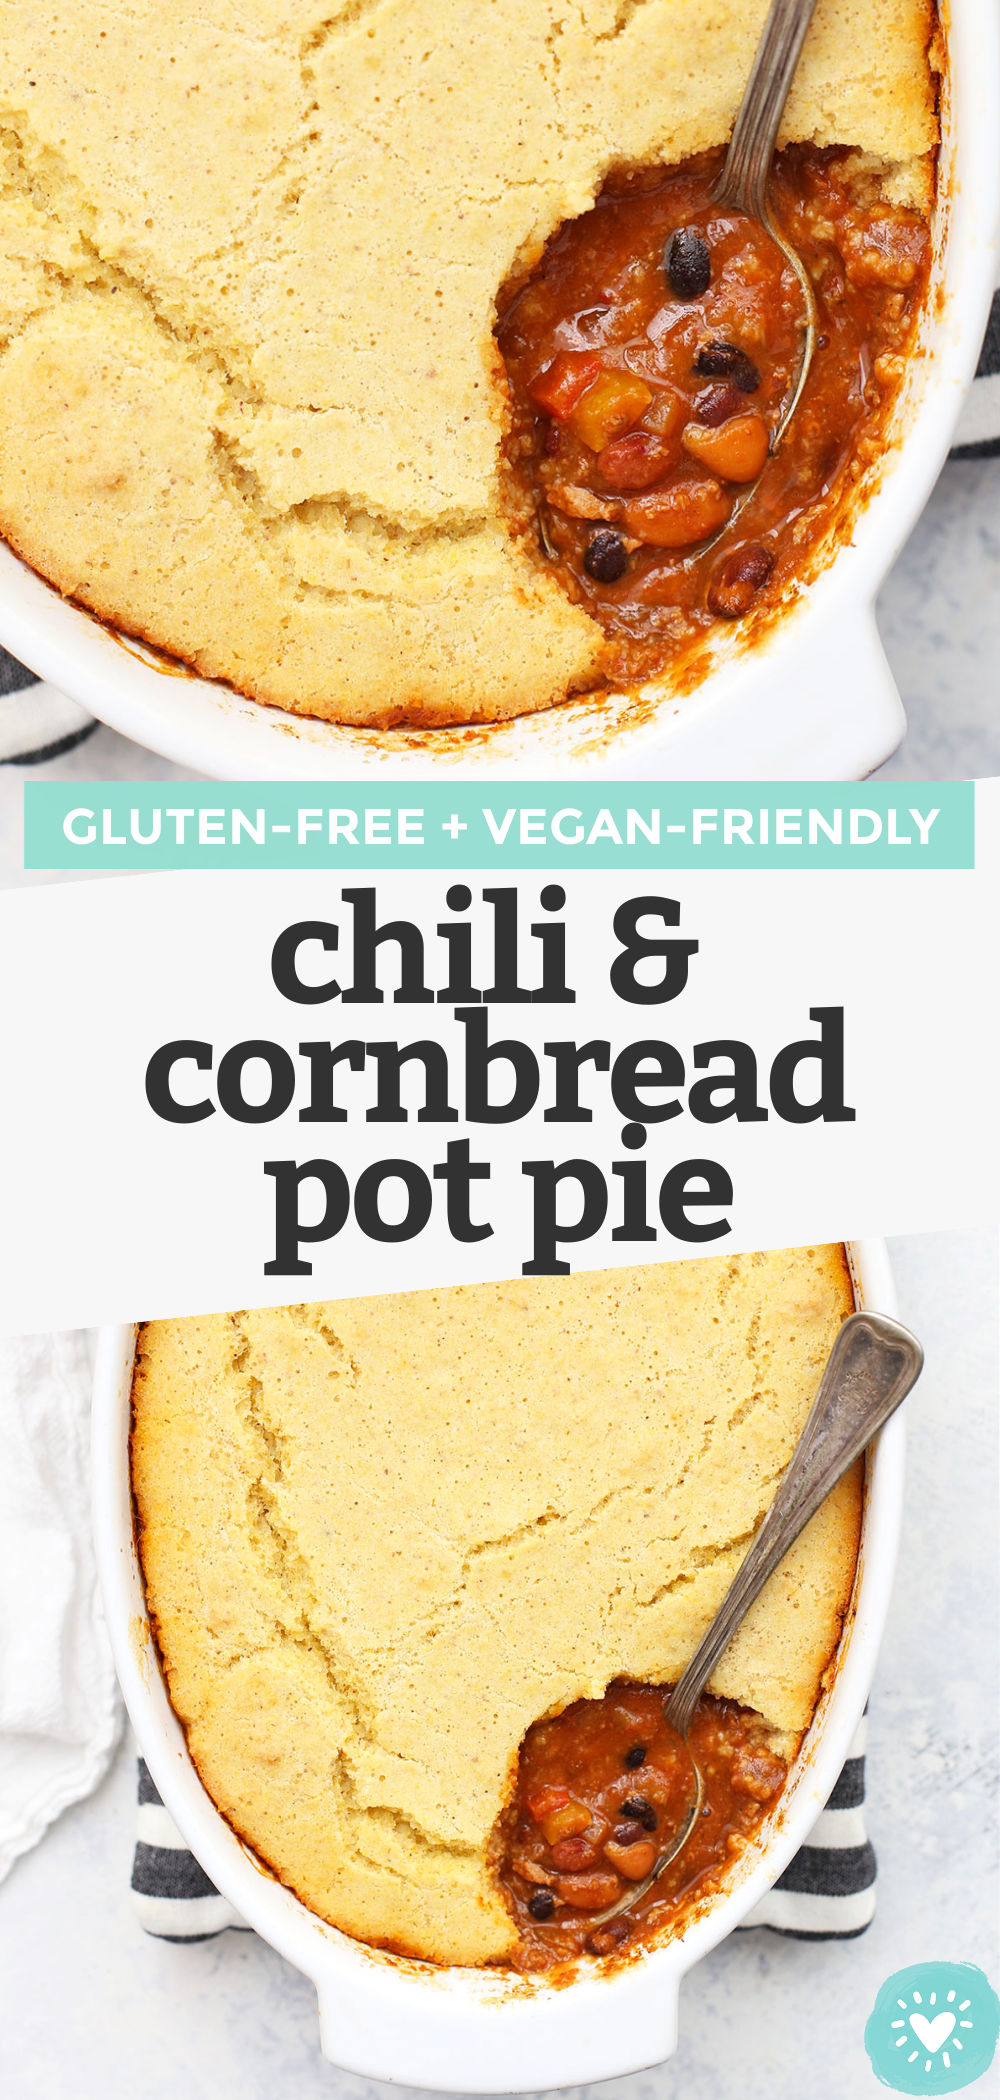 Chili Cornbread Pot Pie -This cozy chili & cornbread pot pie combines two favorites into one delicious meal. Gluten free, dairy free, and easily vegan!// tamale pie recipe // chili and cornbread // vegan chili // vegan cornbread // gluten free chili // gluten free cornbread // chili and cornbread pot pie recipe